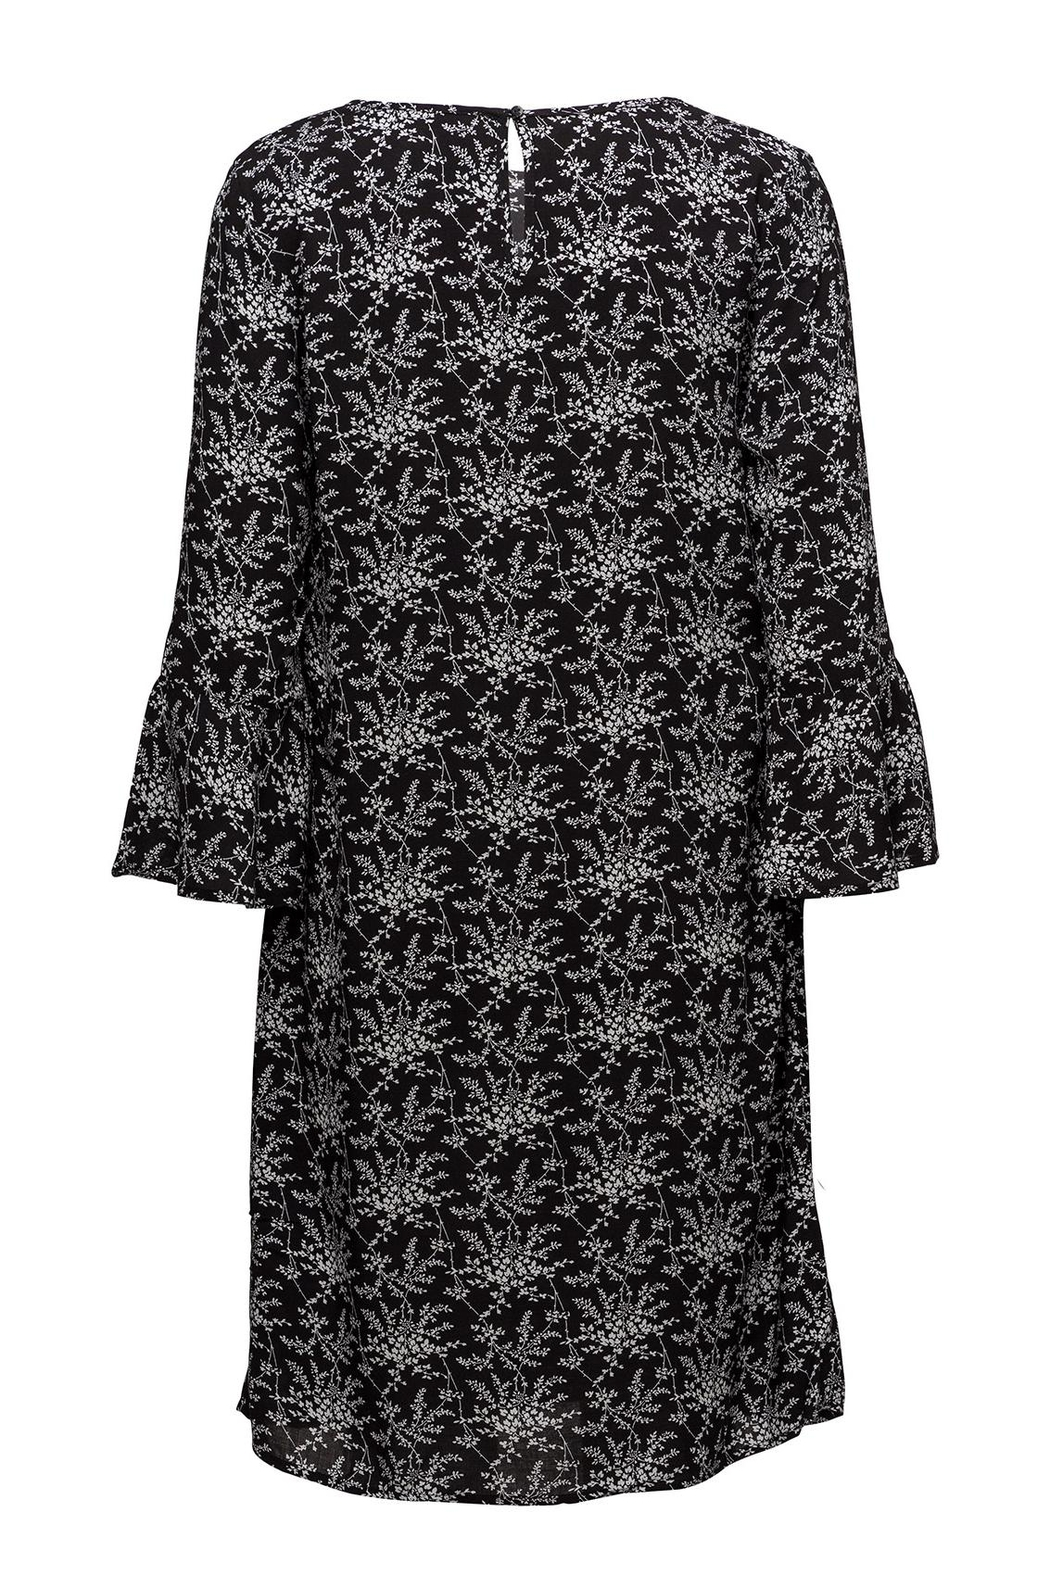 Soyaconcept Faria Dress - Front Full Image